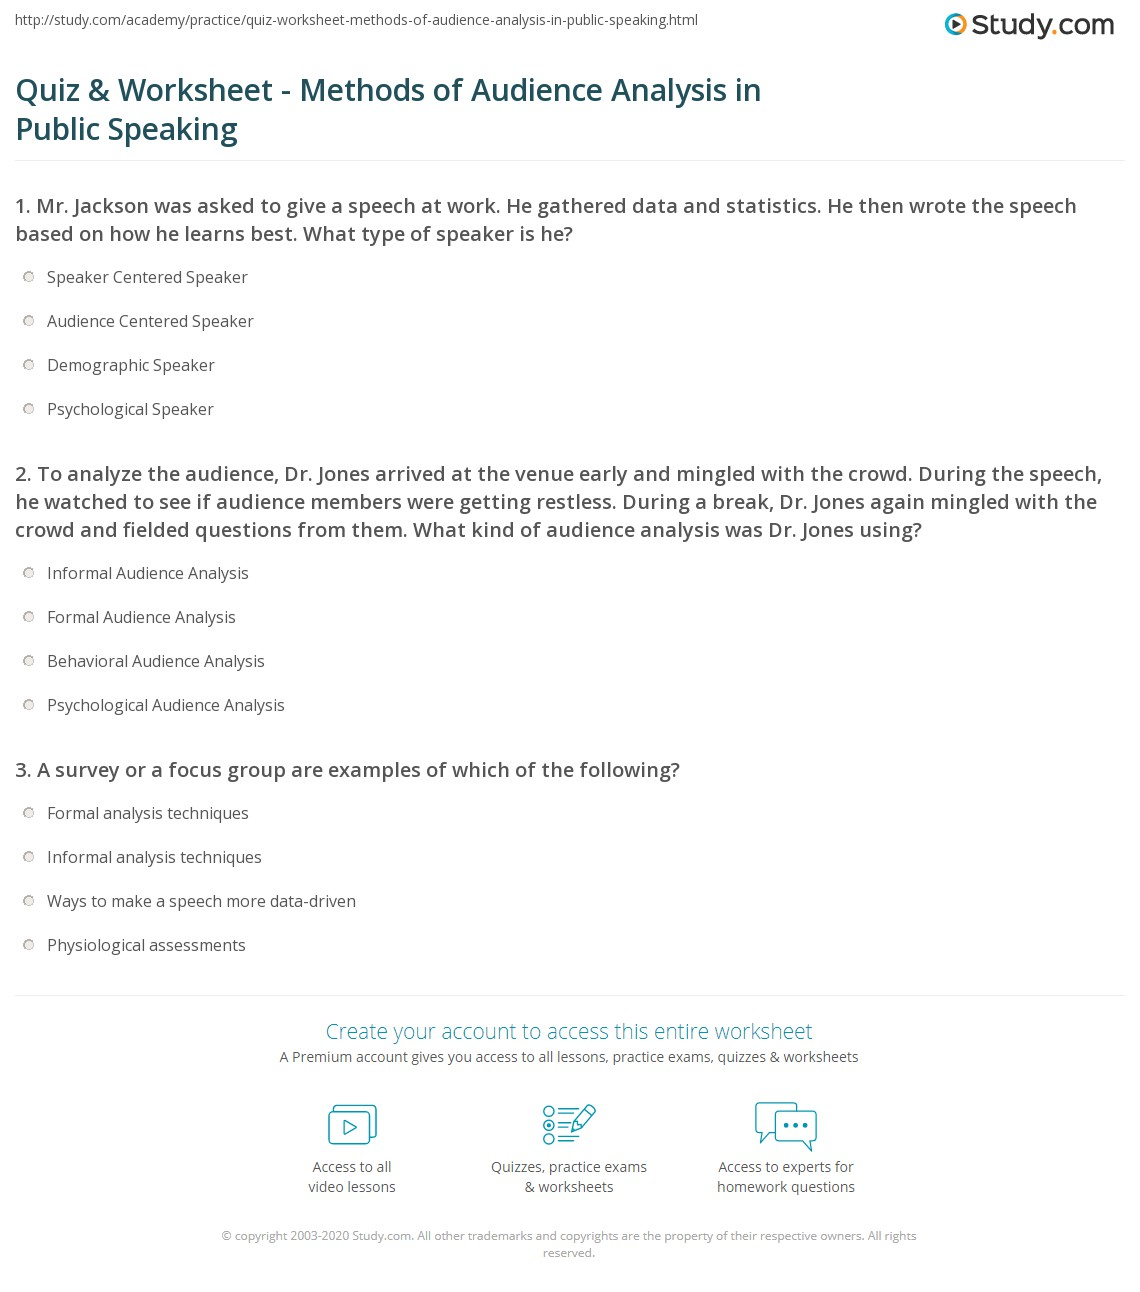 Quiz & Worksheet Methods of Au nce Analysis in Public Speaking